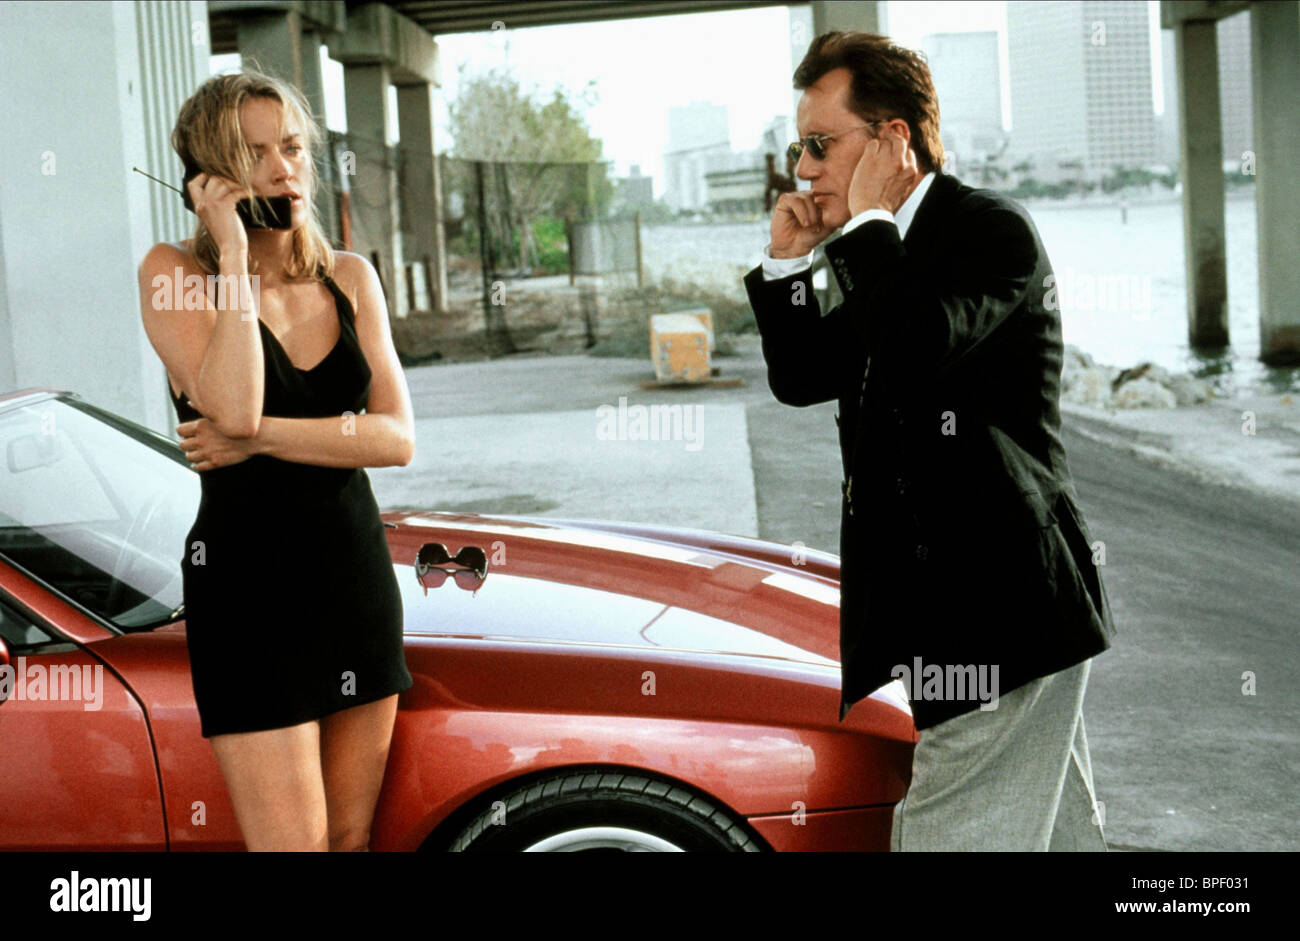 Sharon stone the specialist - 4 9